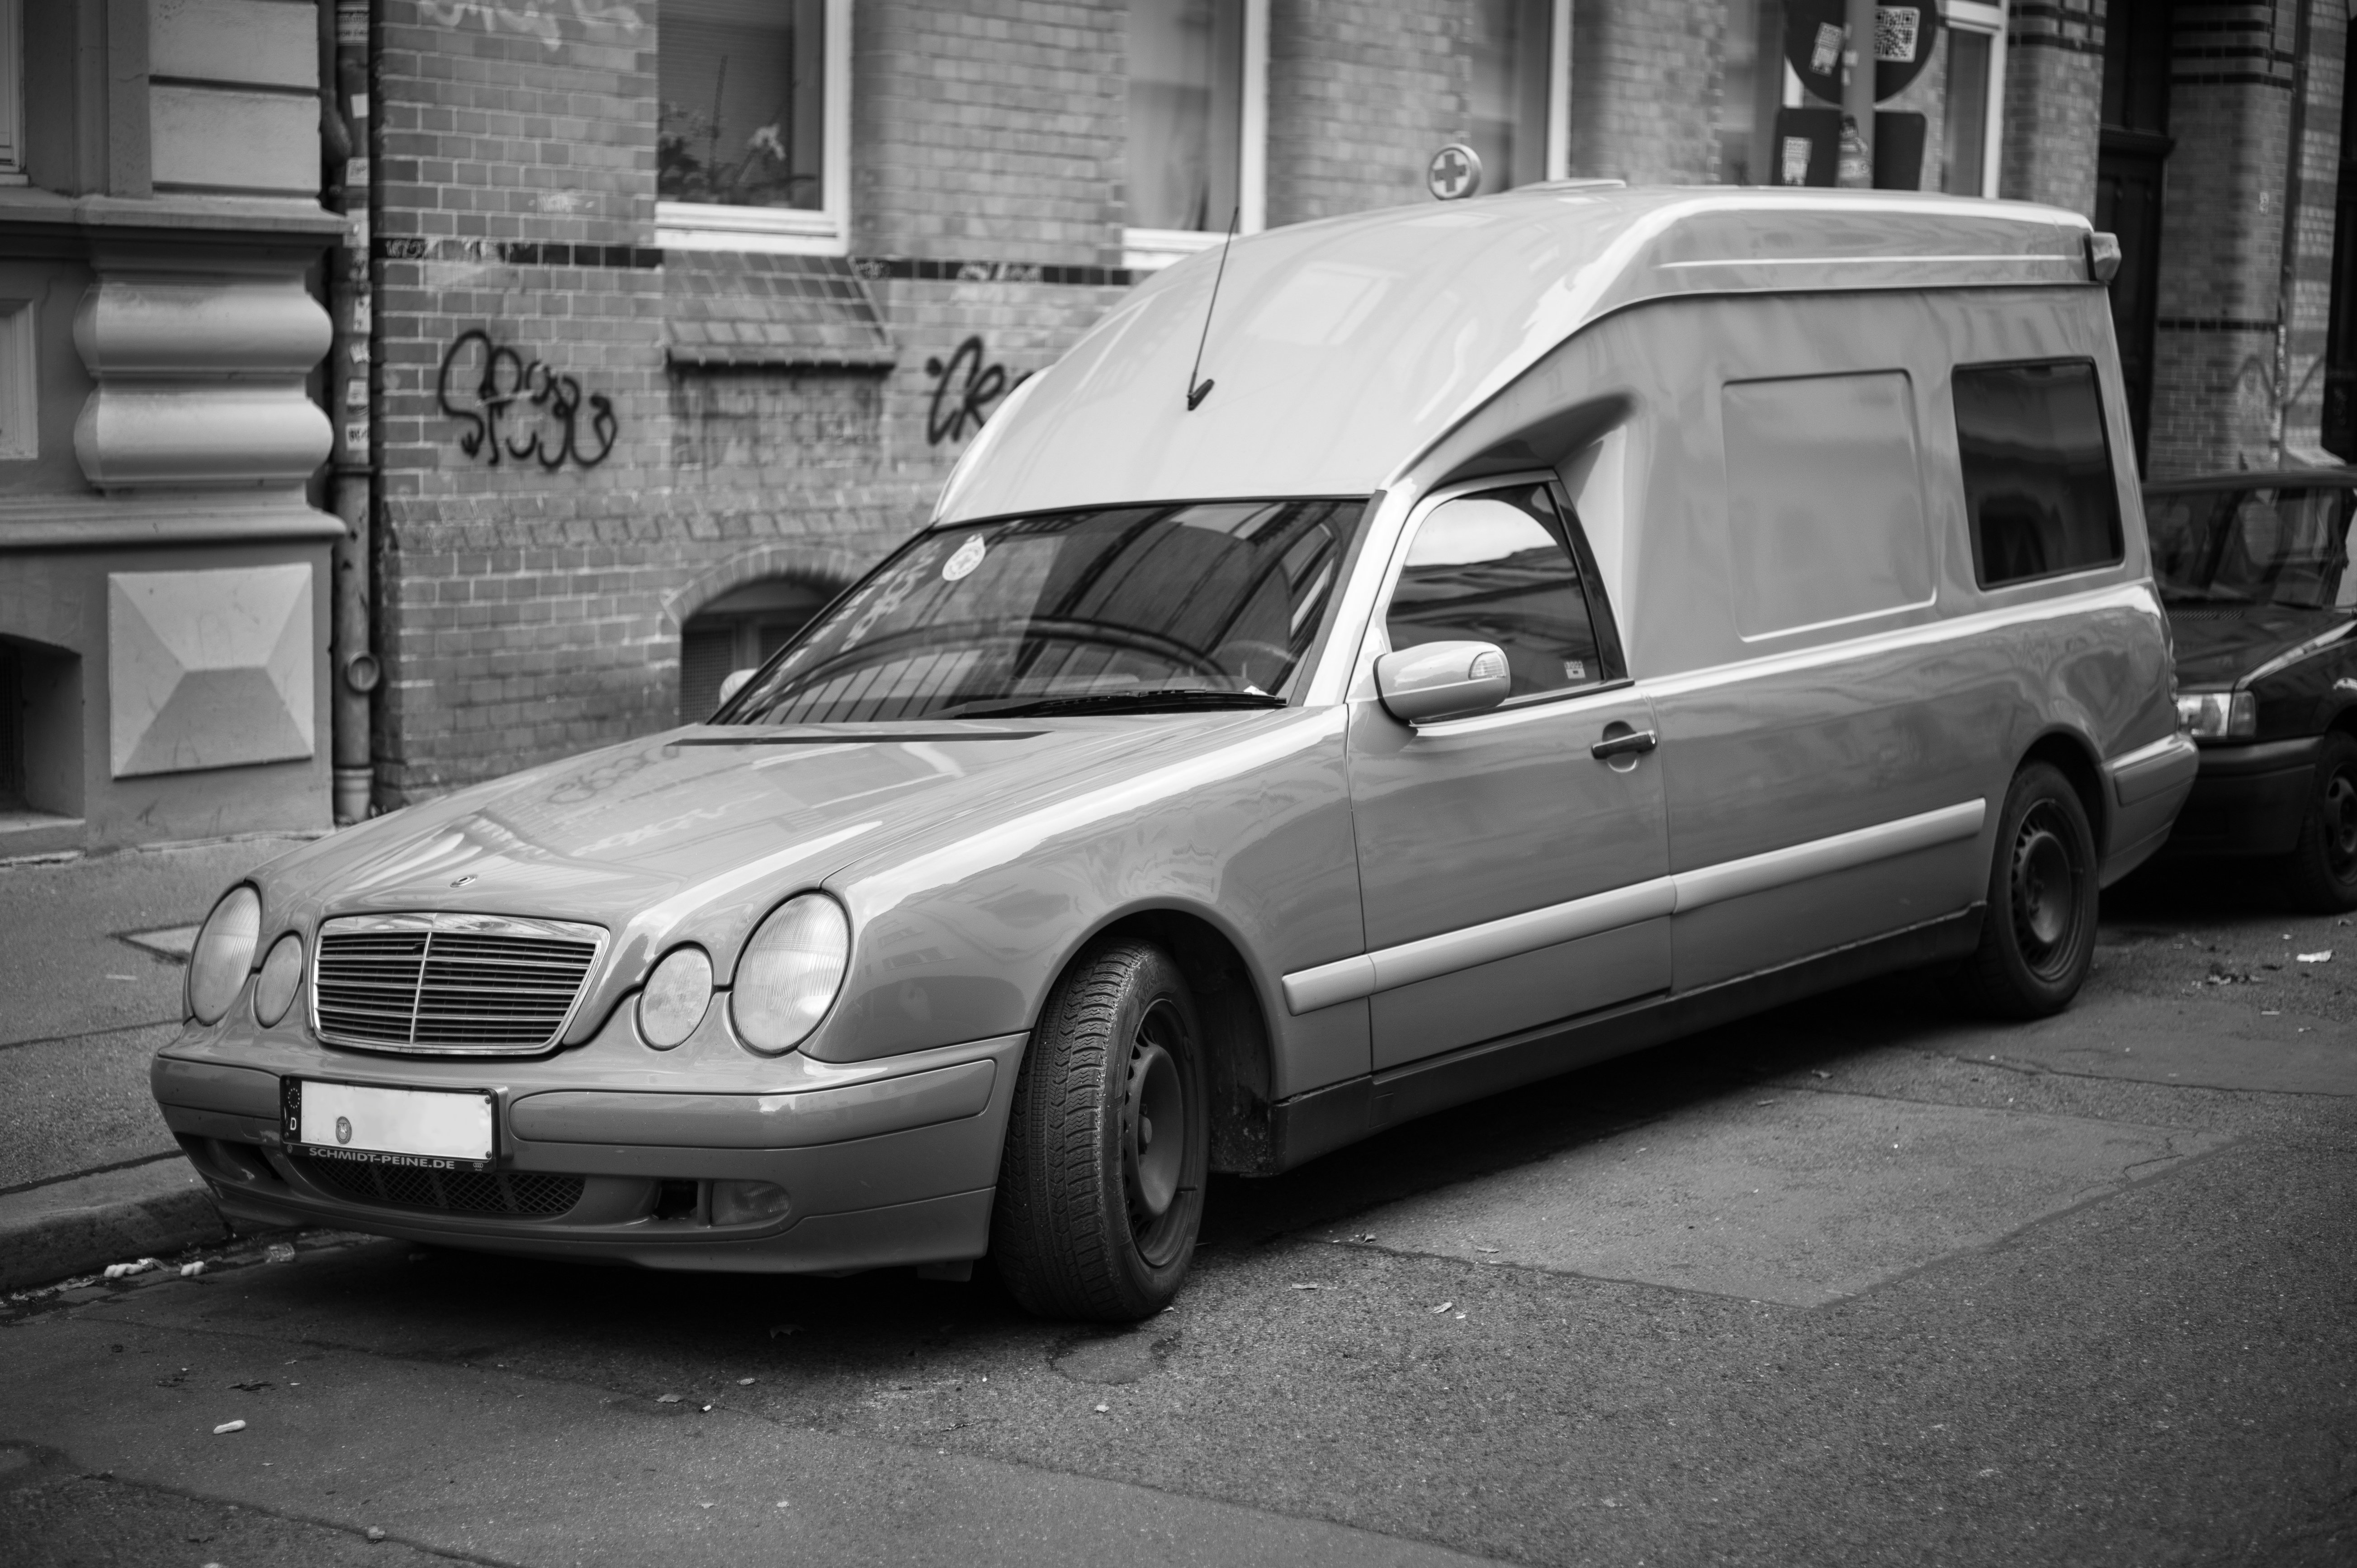 file mercedes benz w210 binz station wagon ambulance car hannover germany wikimedia commons. Black Bedroom Furniture Sets. Home Design Ideas